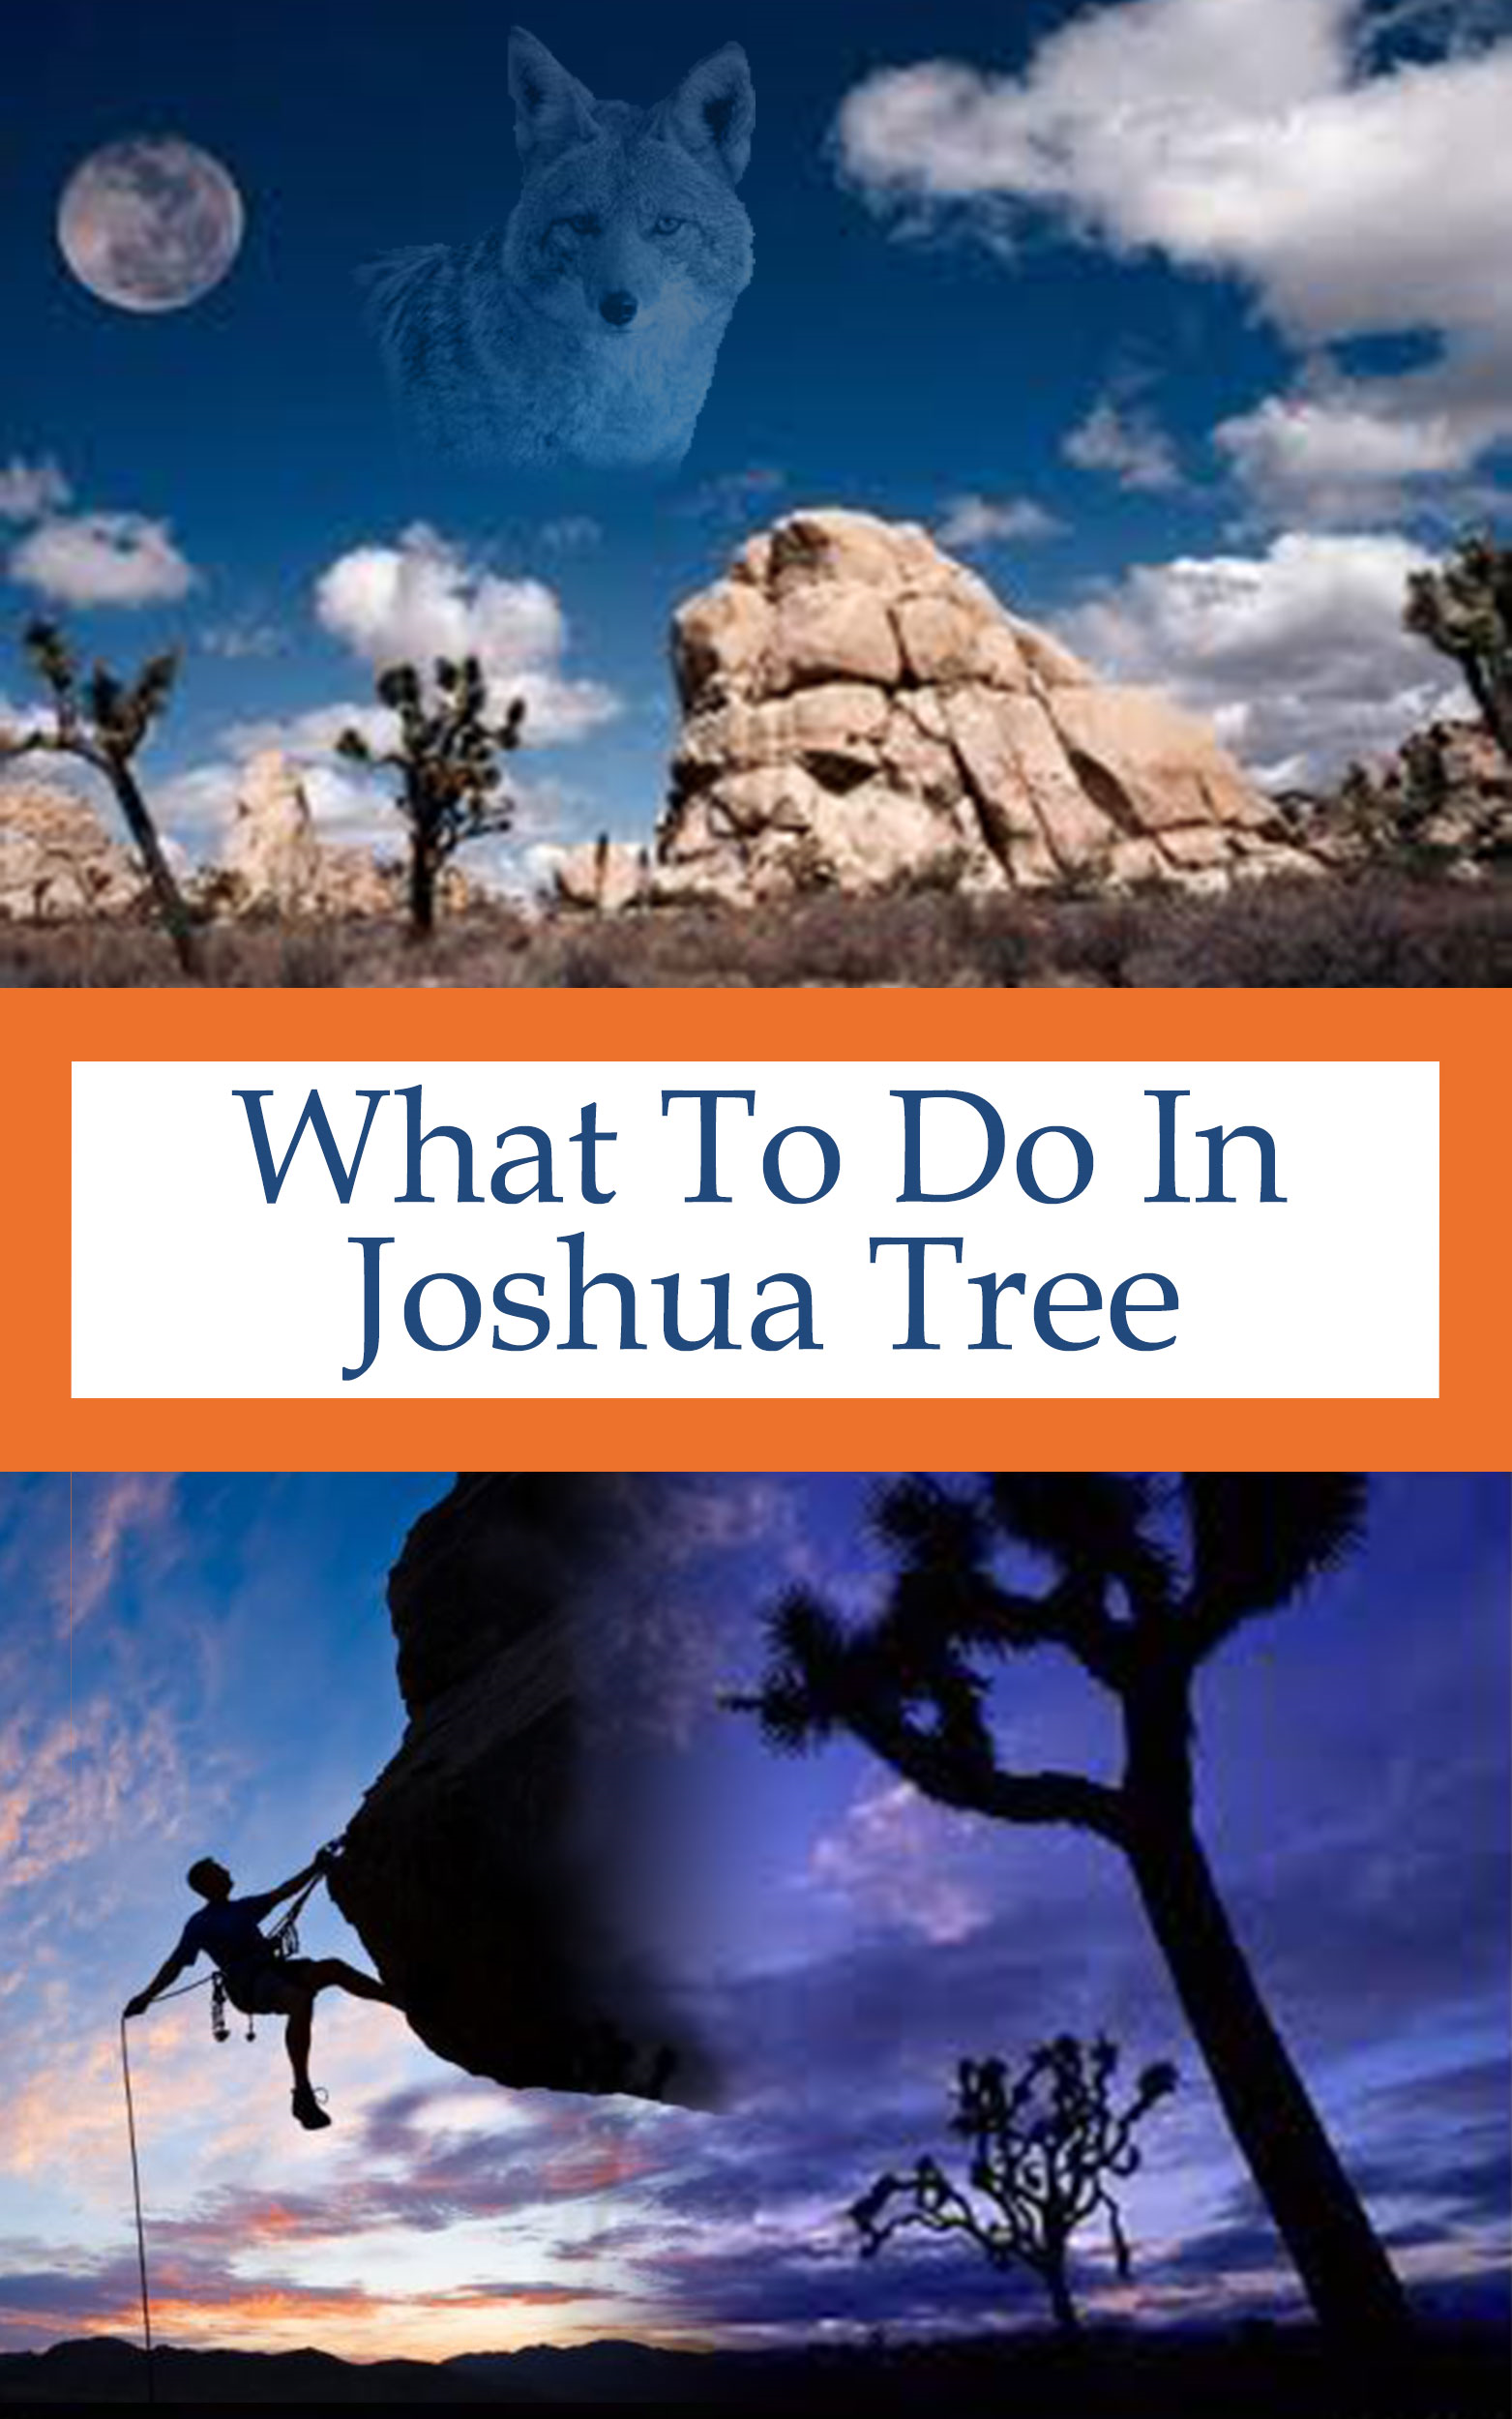 What To Do In Joshua Tree